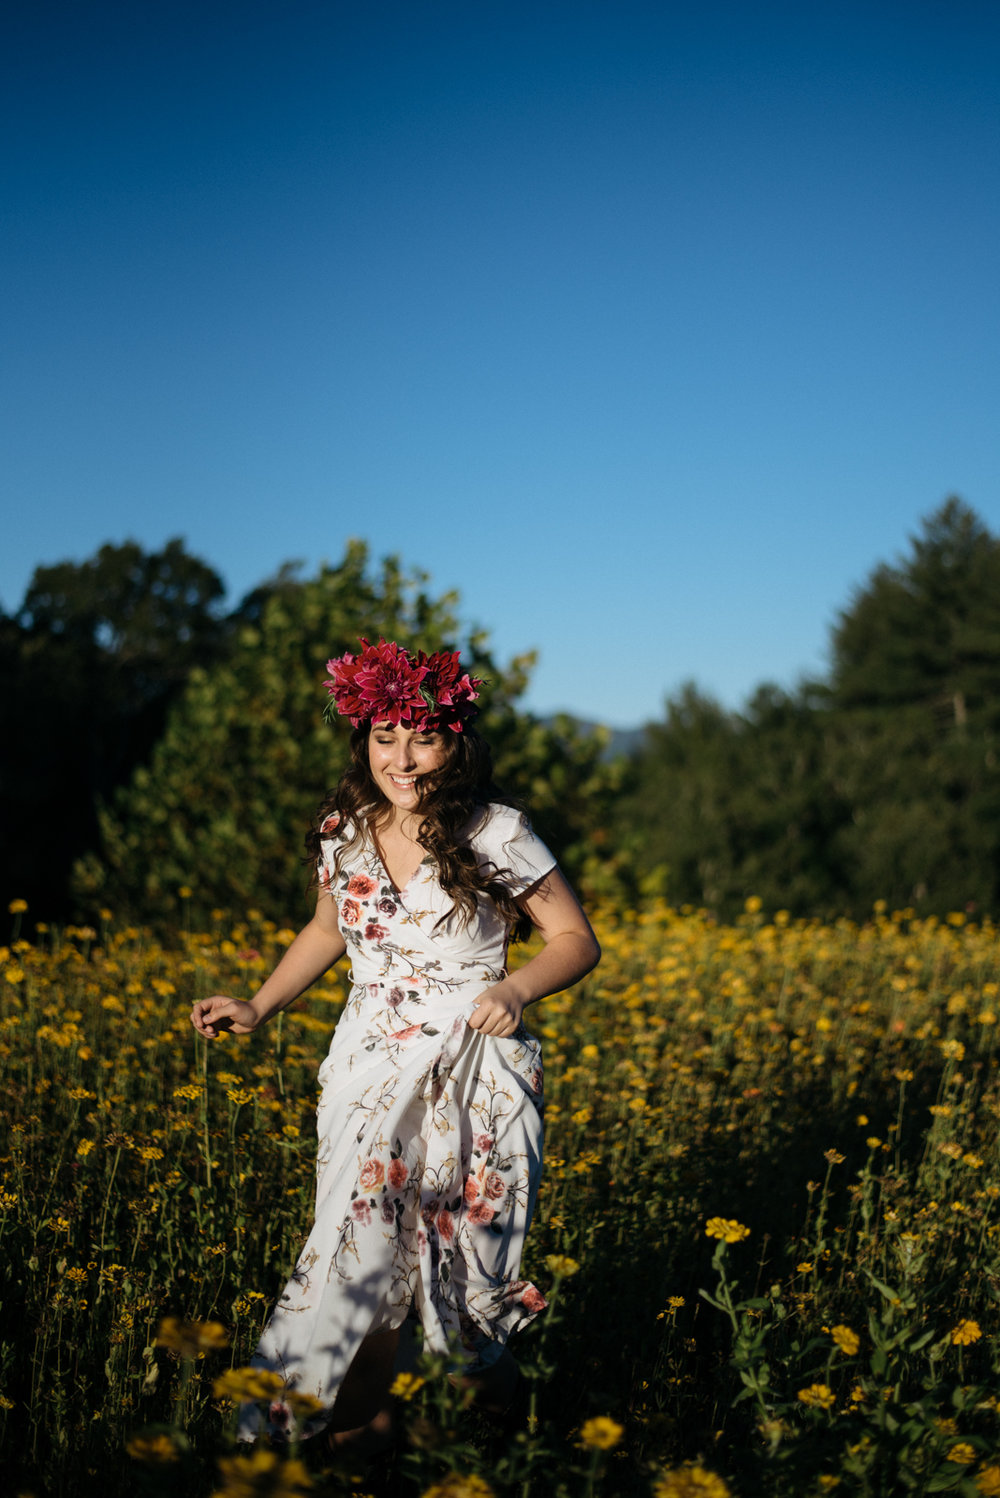 flower crown on girl running in field